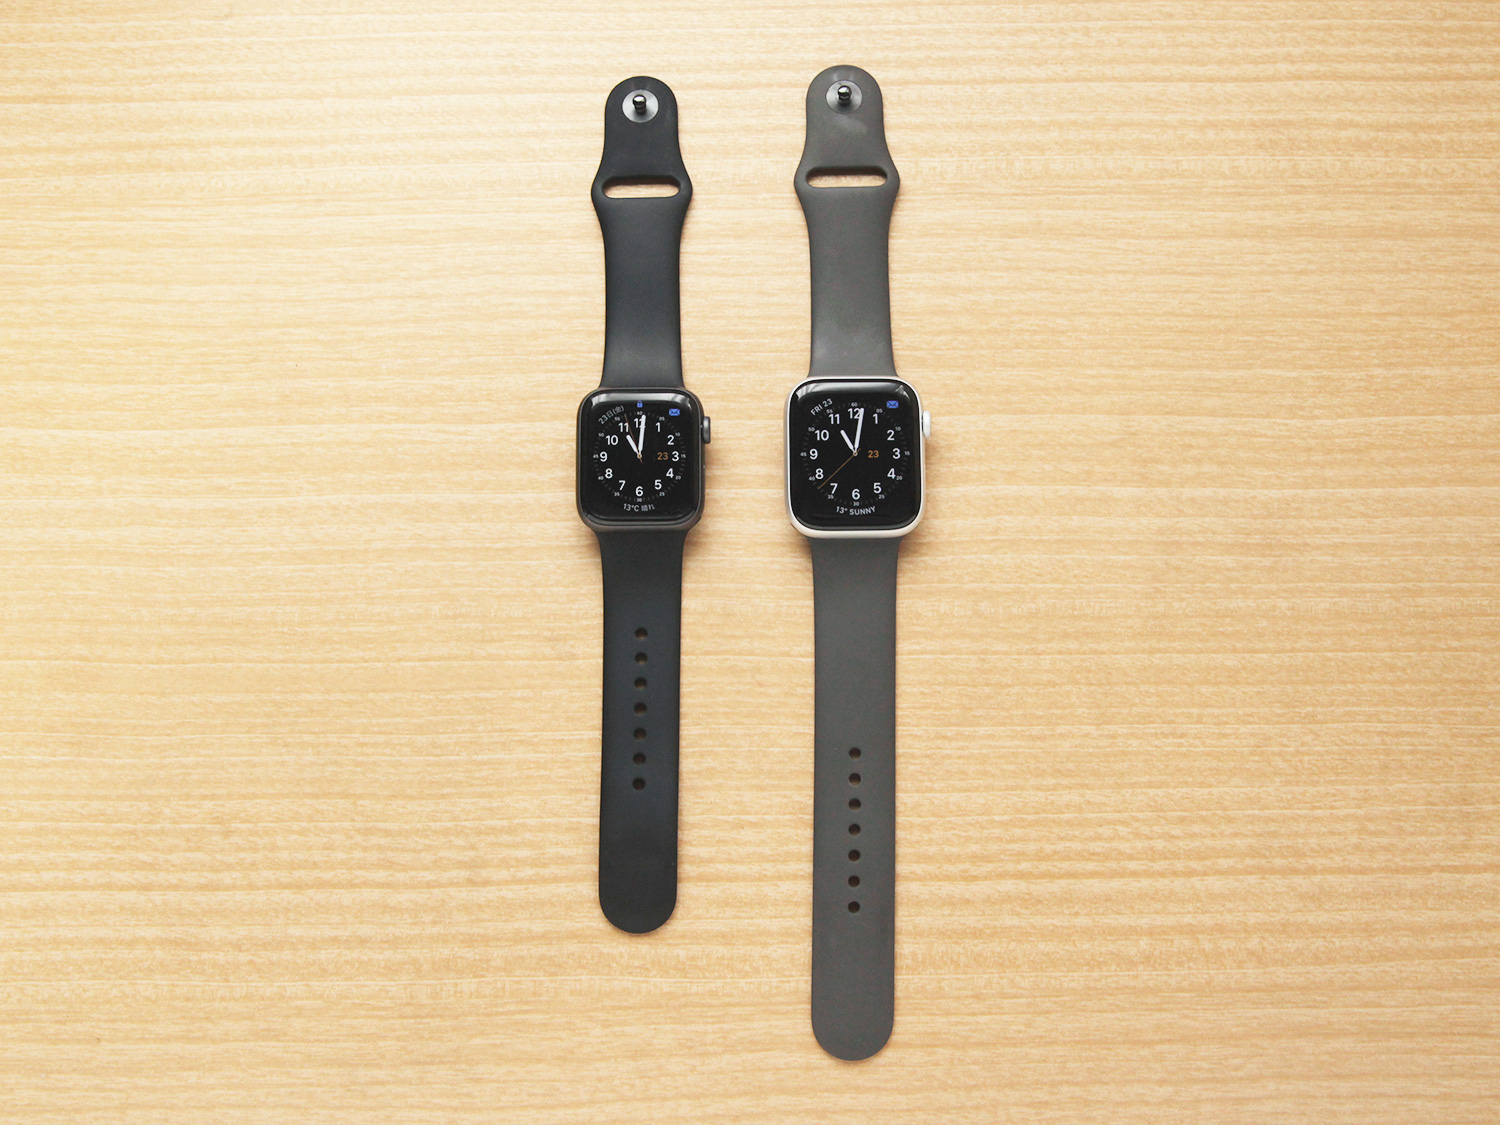 Apple Watch Seires 4の40mmと44mmサイズ比較